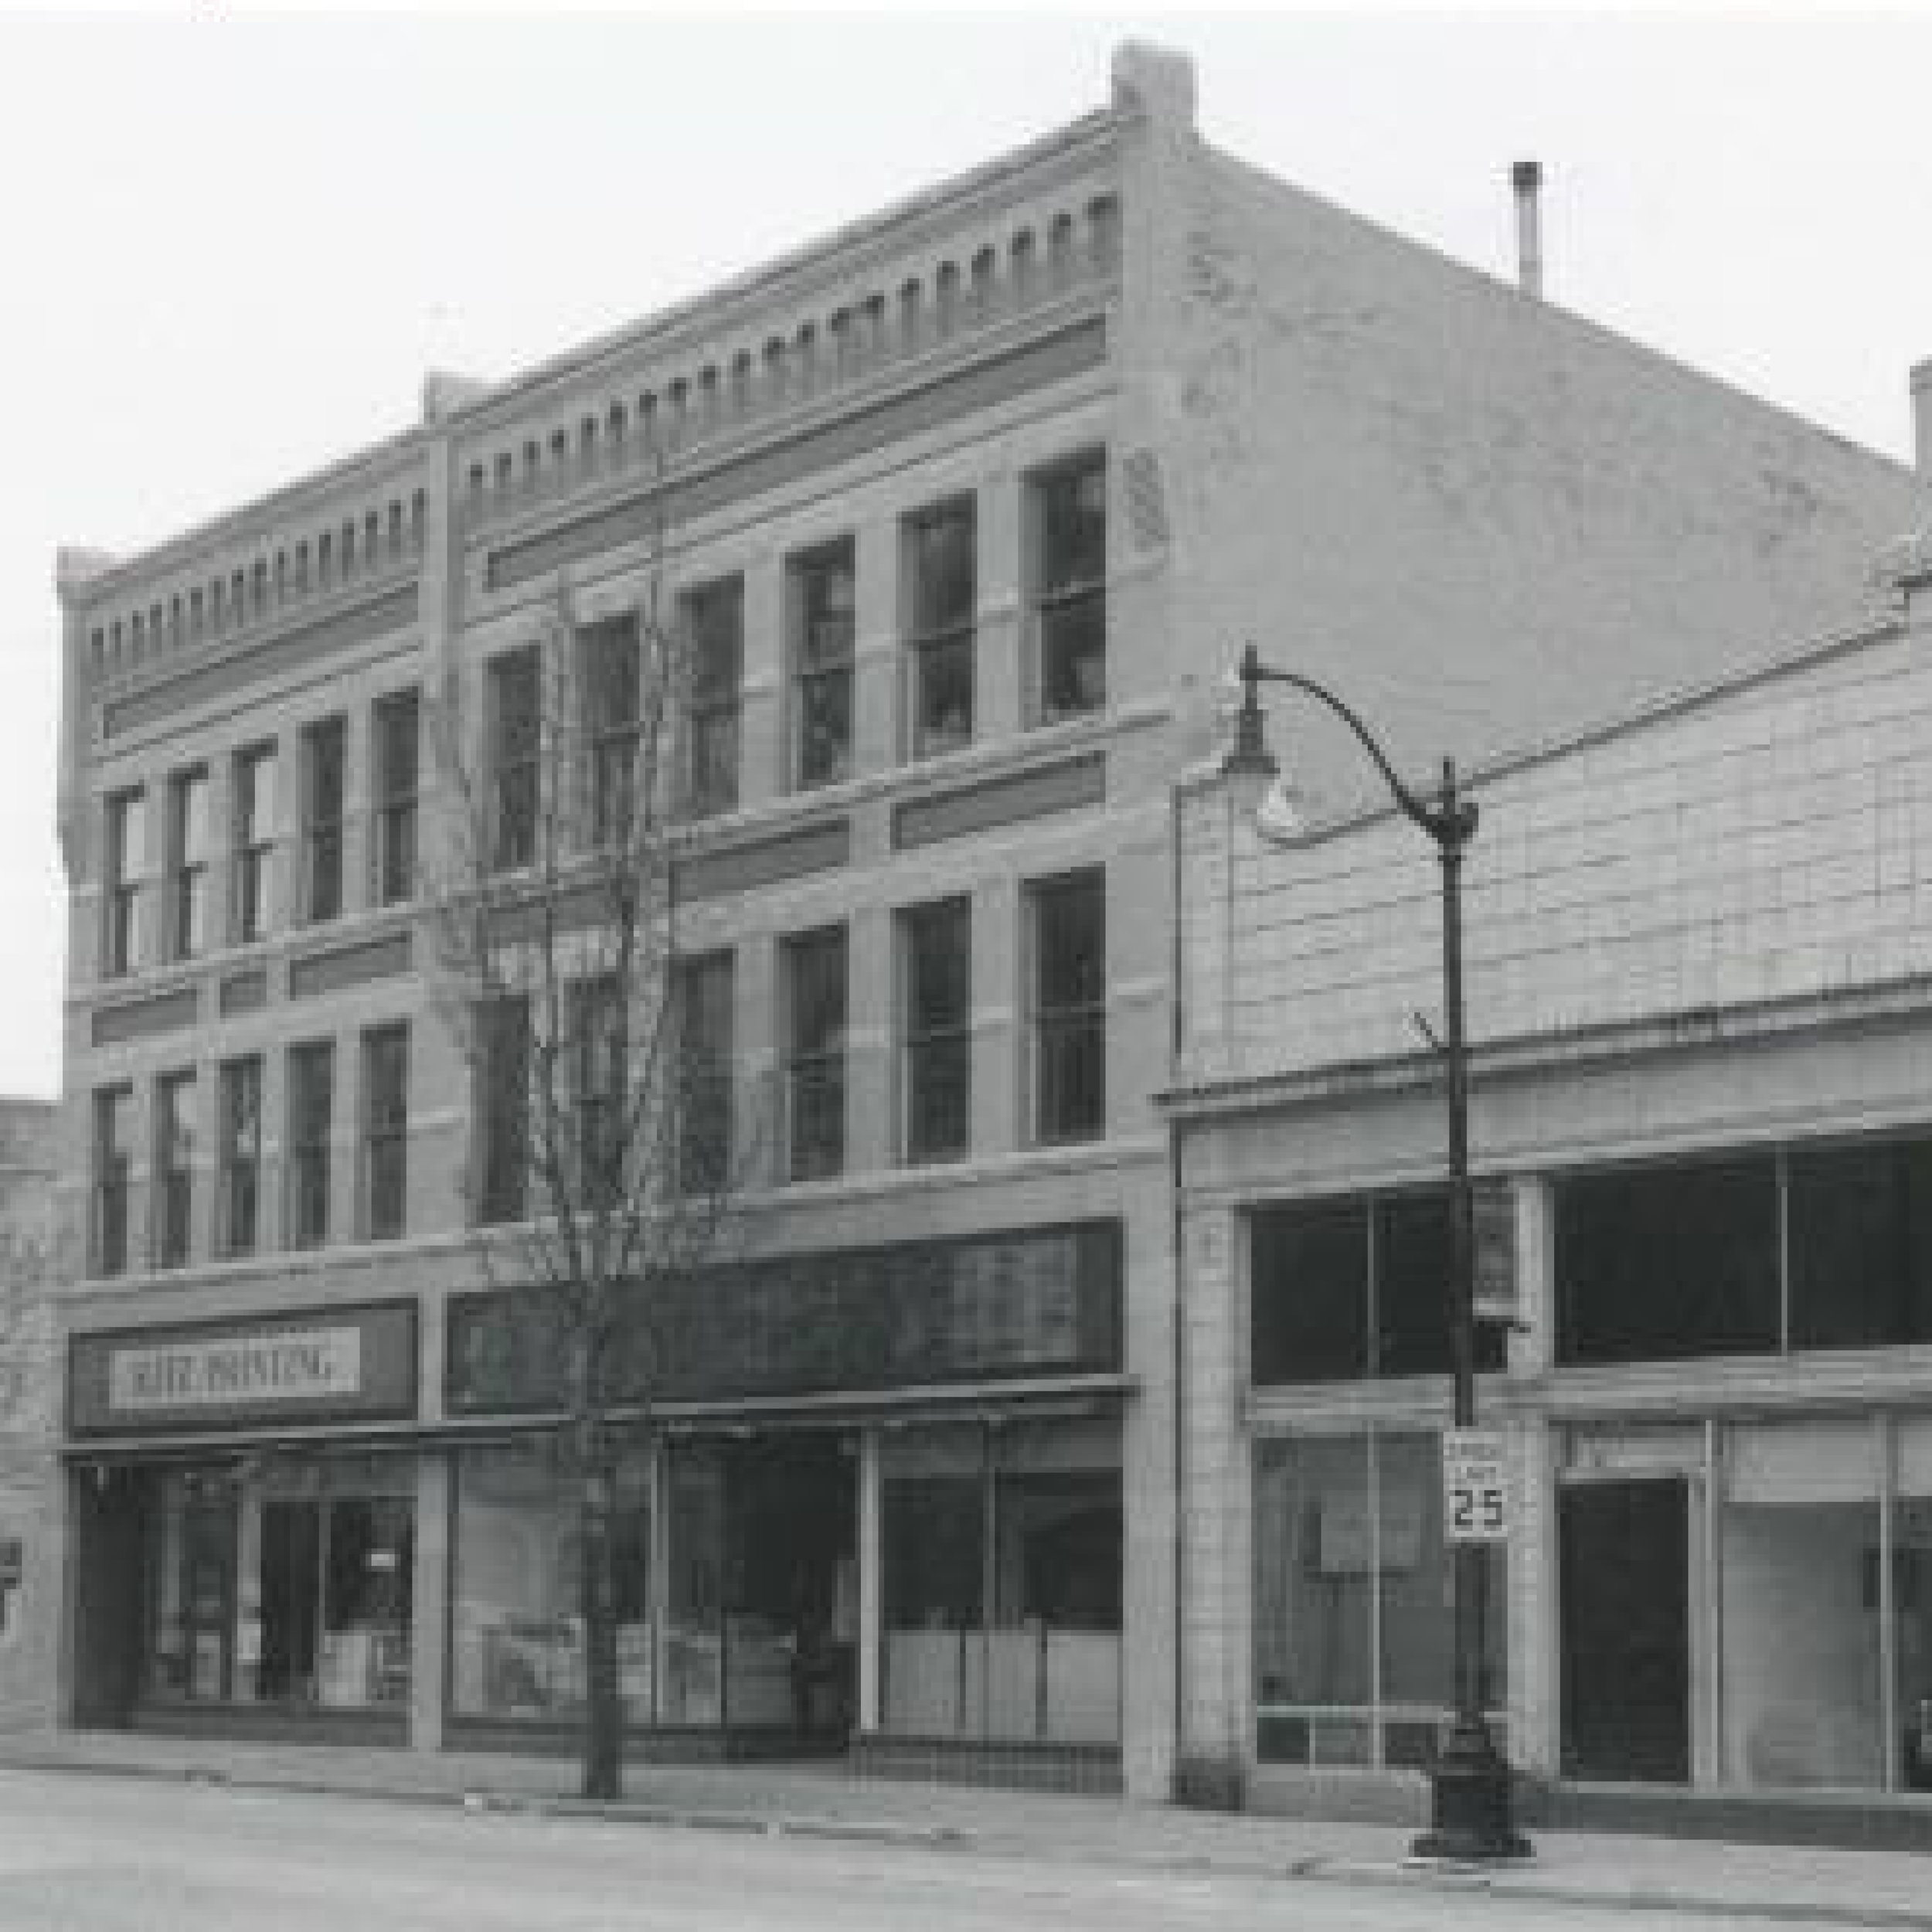 BUSINESS AWARD WINNER 2017   Frank Percey Fur & Gun (1900)   531 N. Main St. | Oshkosh, WI   WTHP project info    Wisconsin Historical Society Record